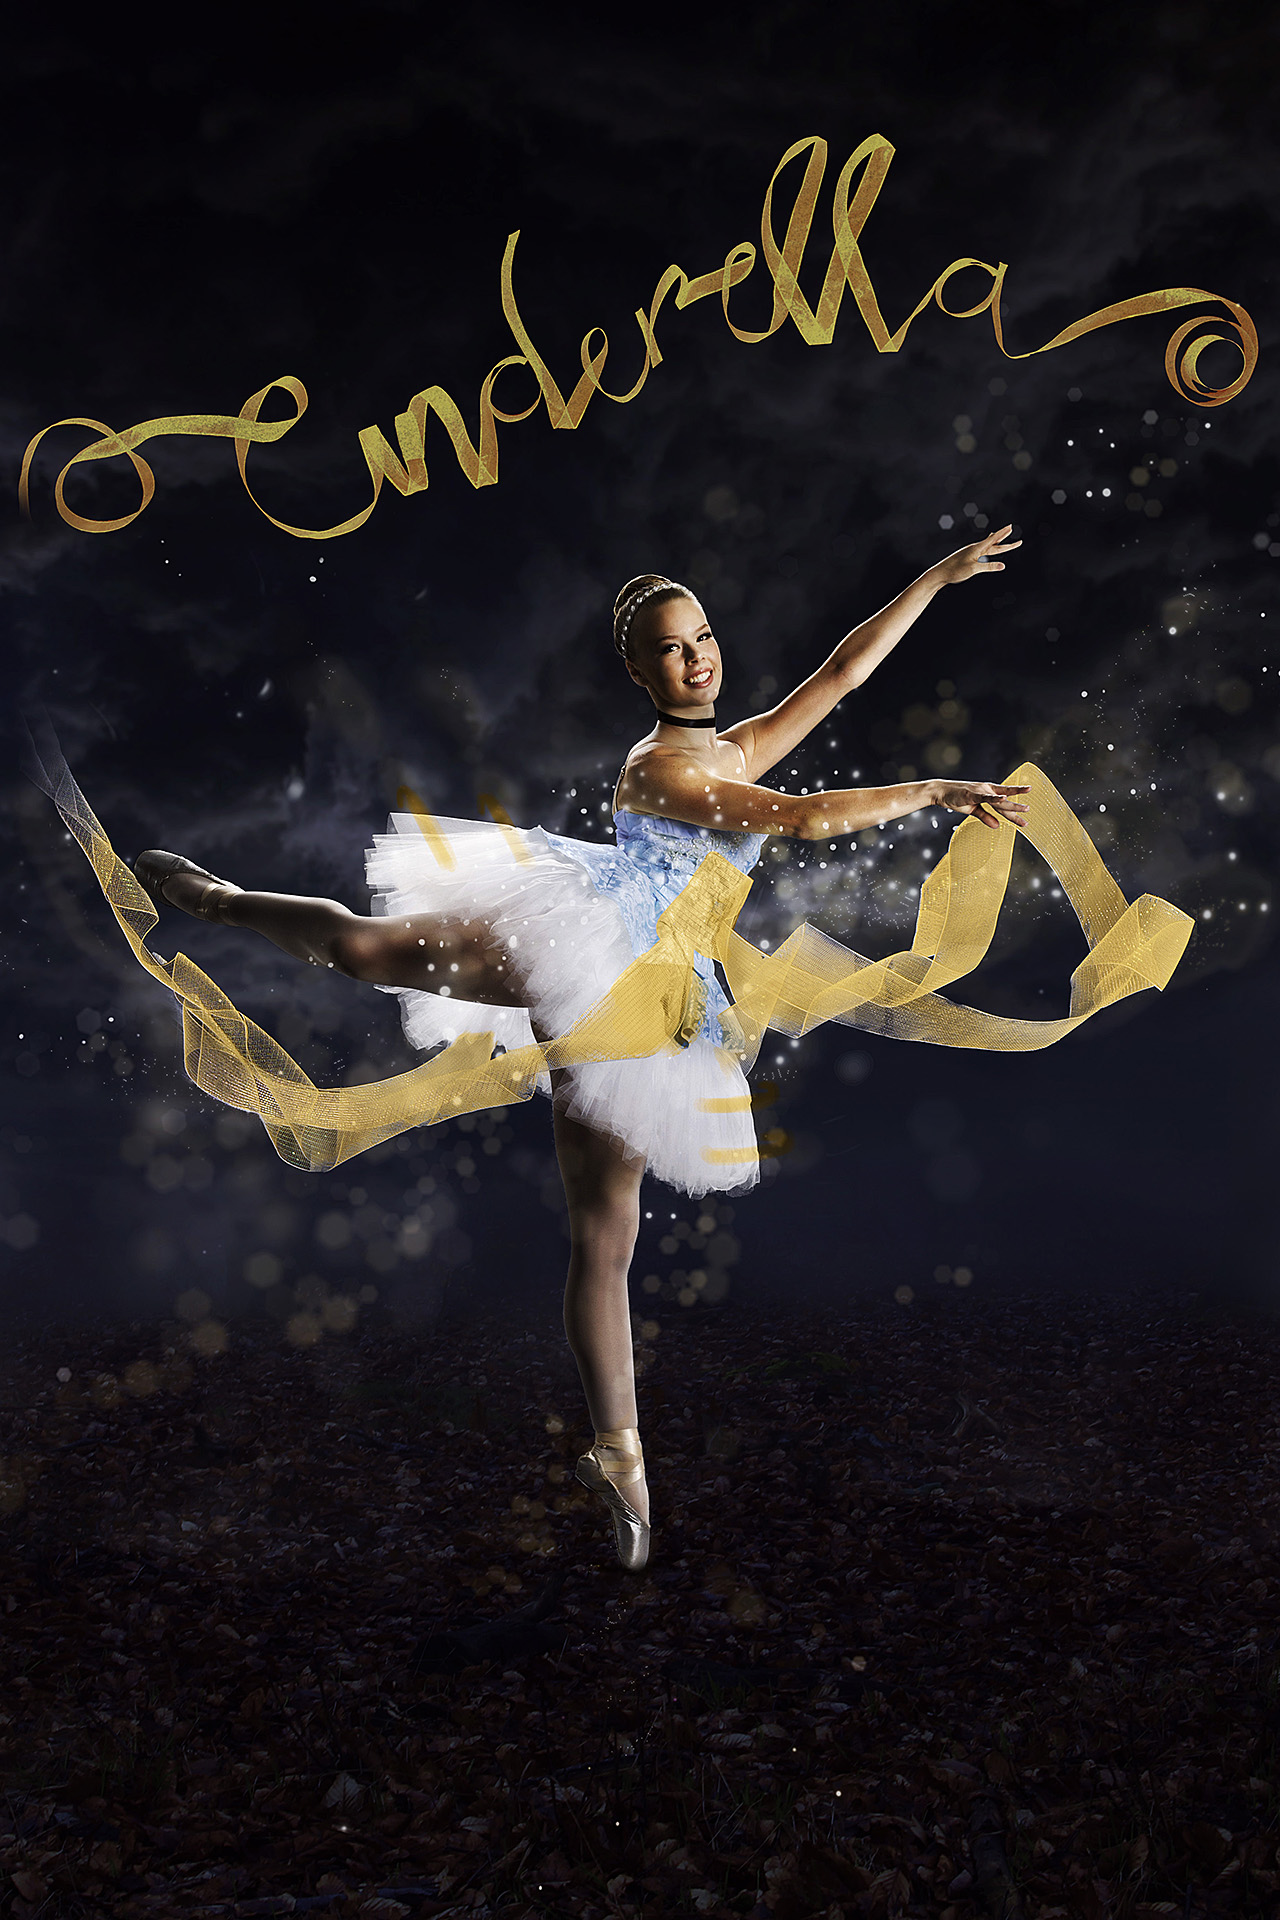 Dark, cloudy background with ballerina in short blue costume and Cinderella written in gold ribbon in foreground